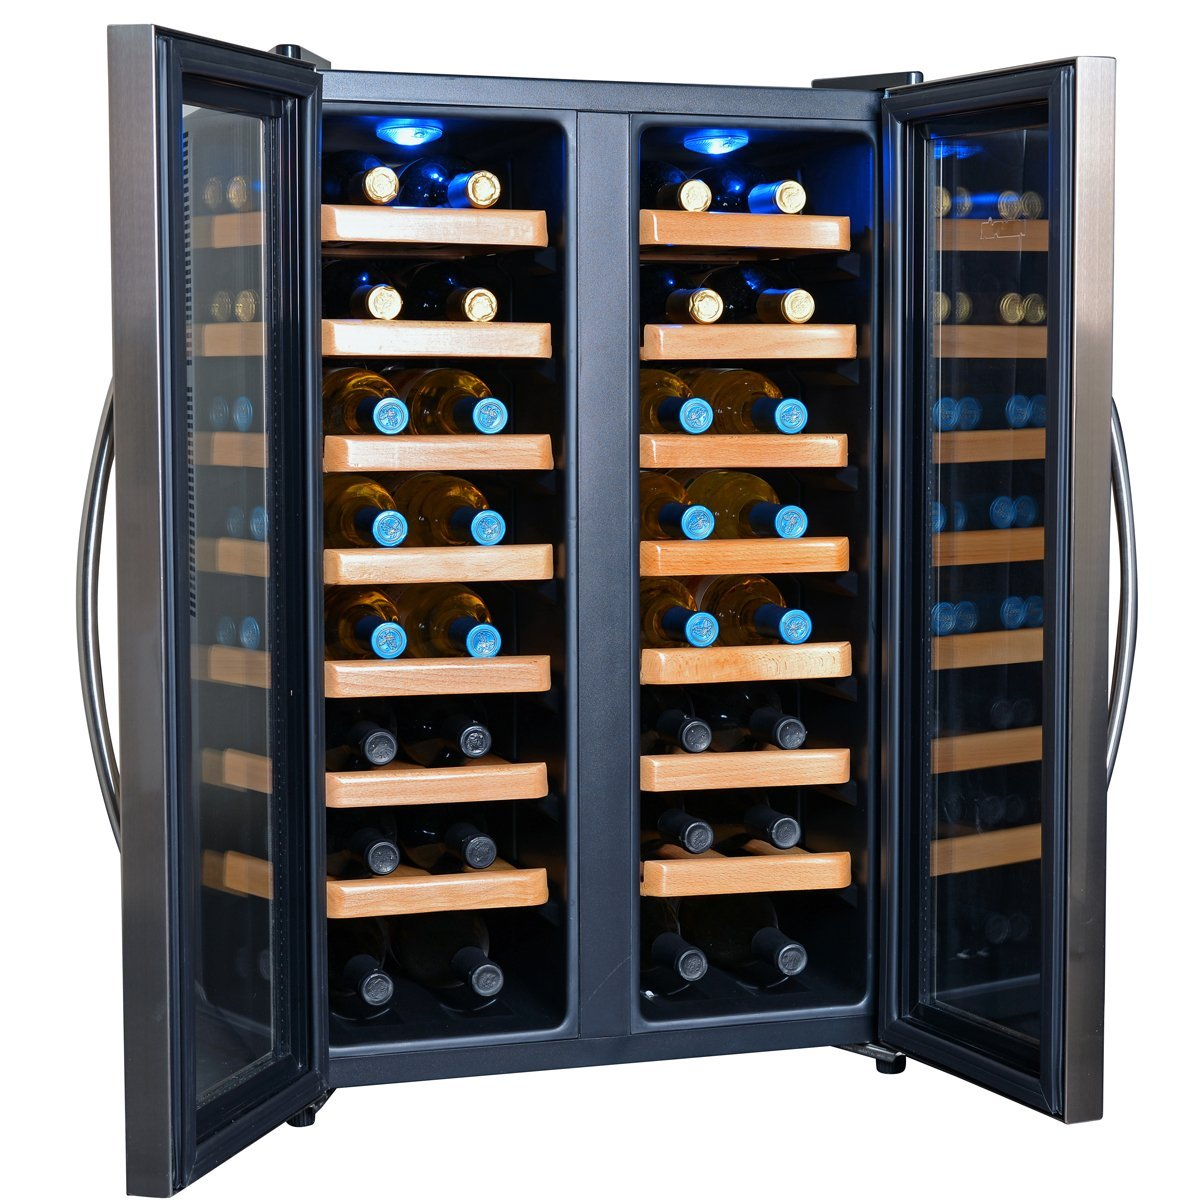 NewAir AW-321ED Dual Zone Thermoelectric Wine Cooler-32 Bottle